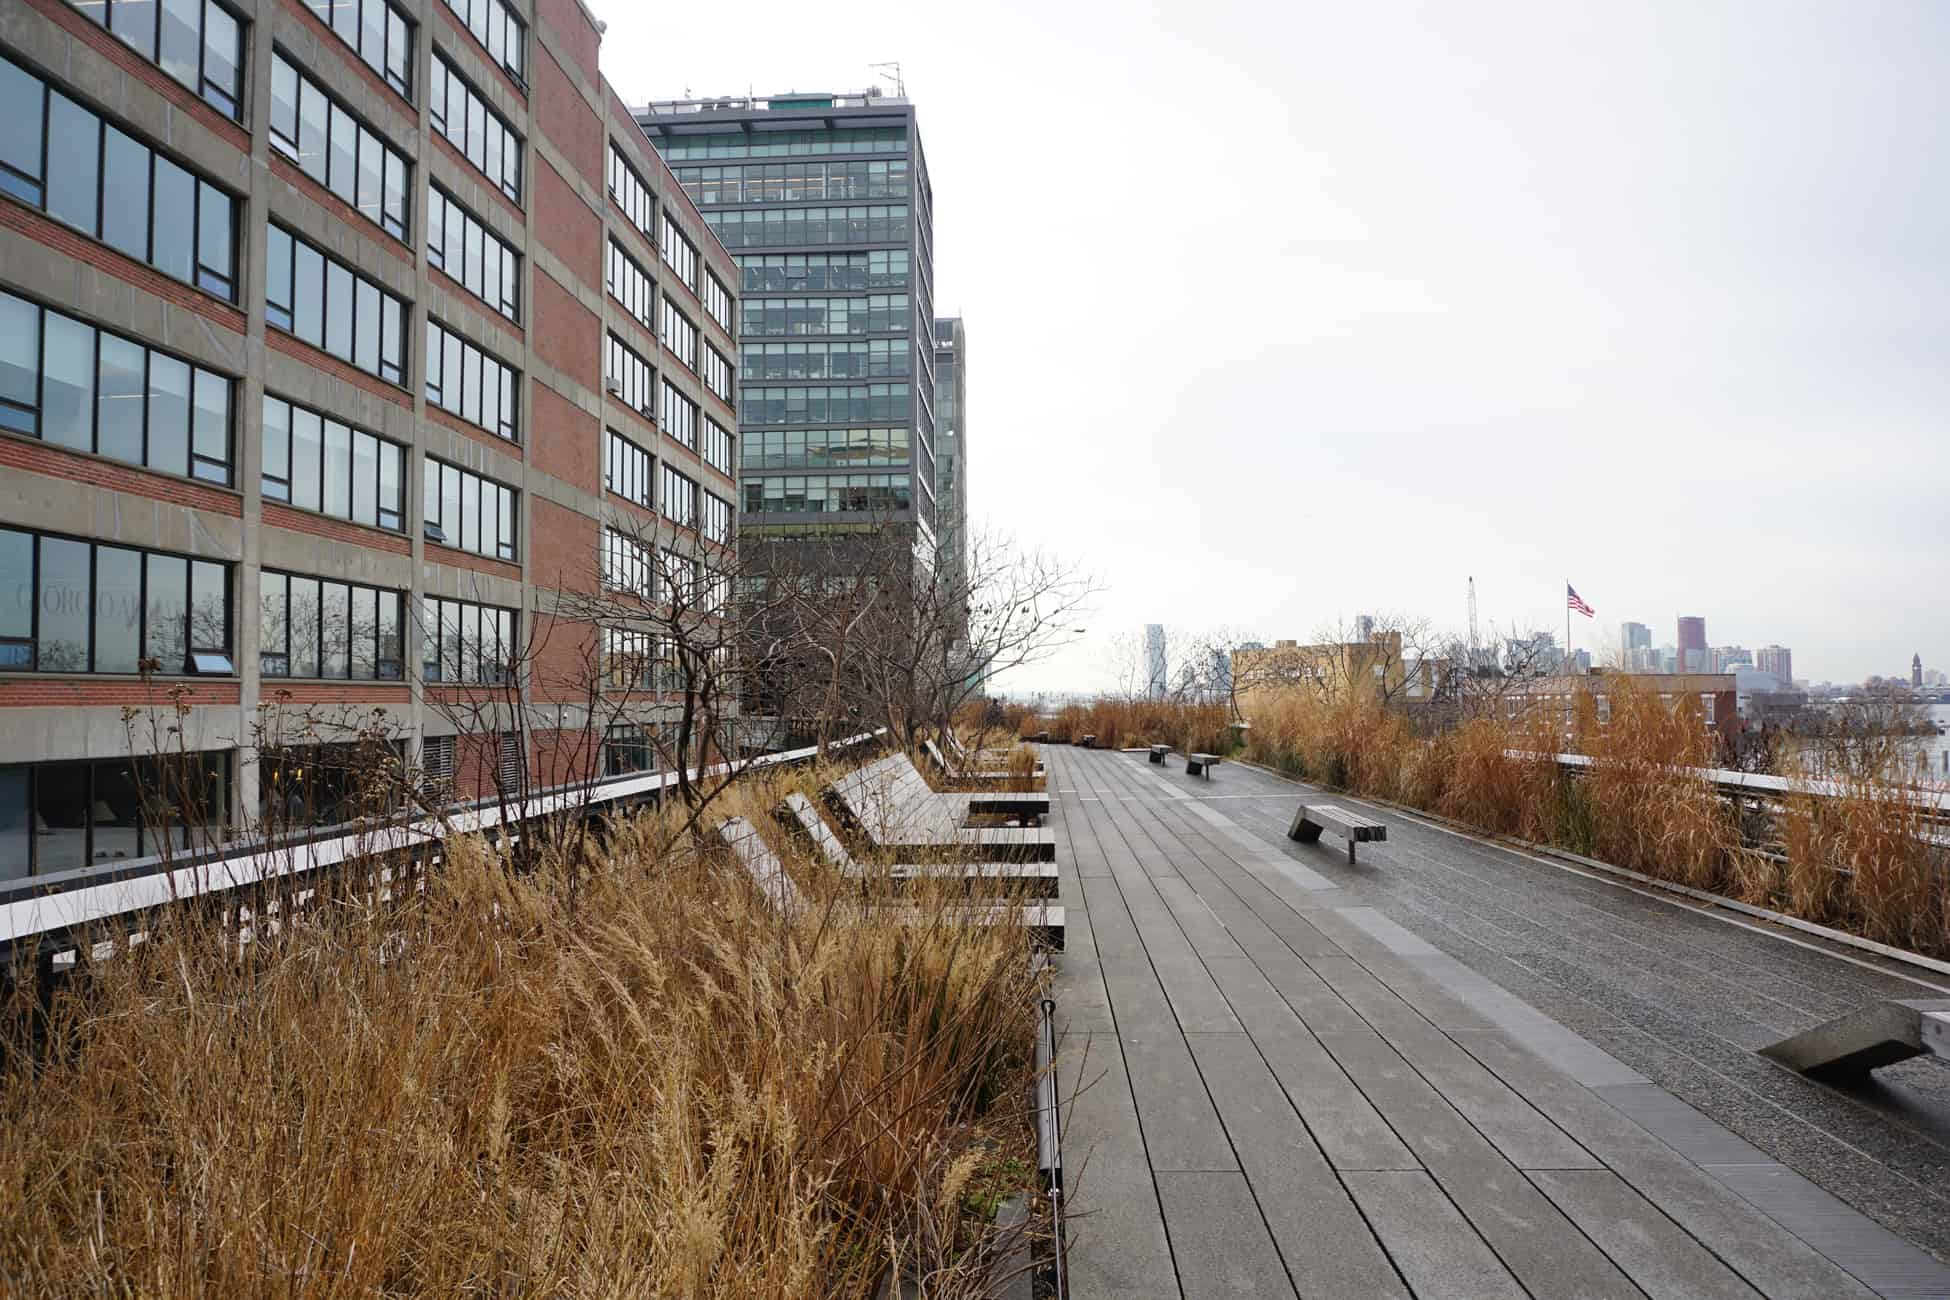 The Highline Park NYC